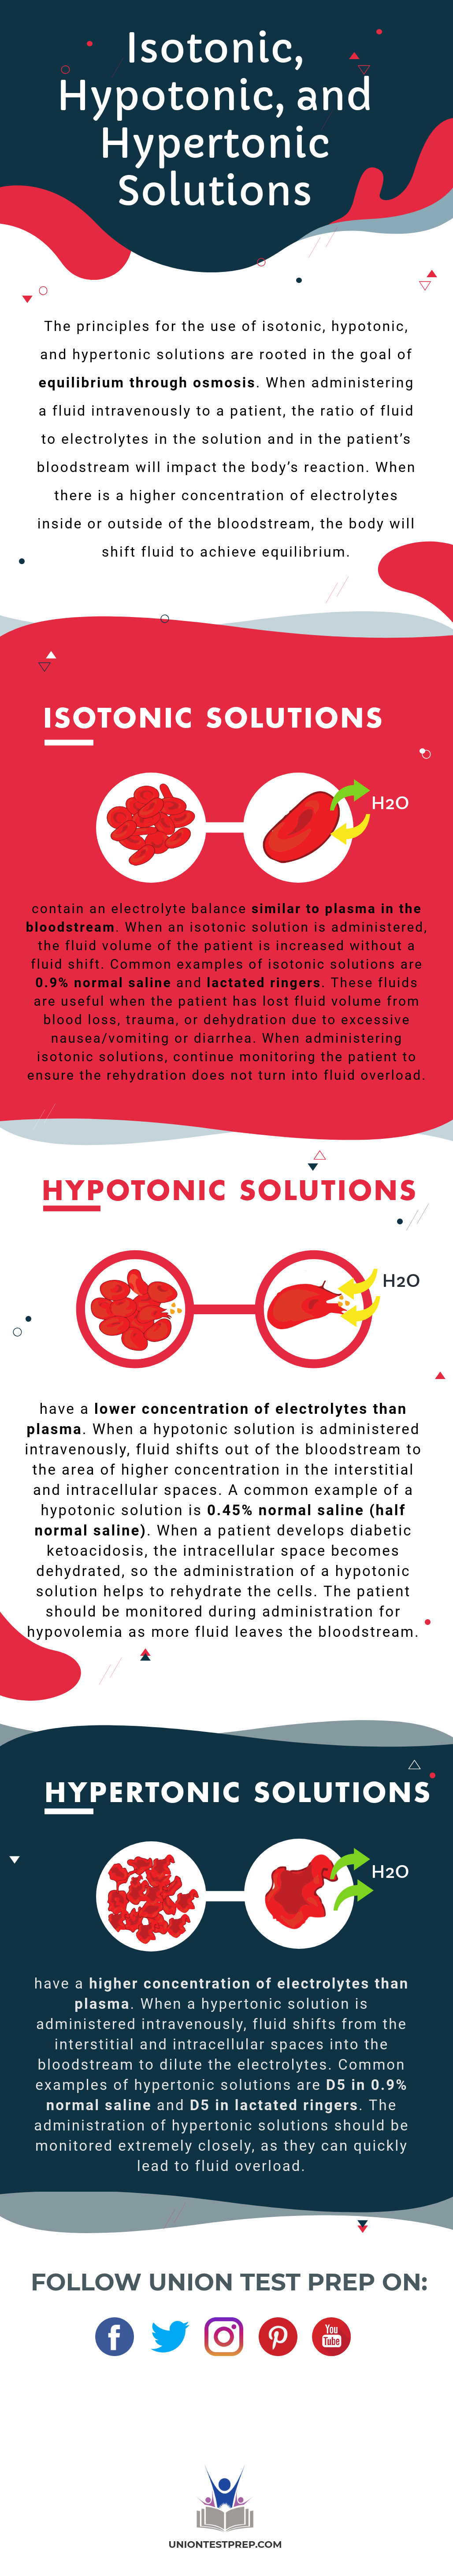 Isotonic, Hypotonic, and Hypertonic Solutions